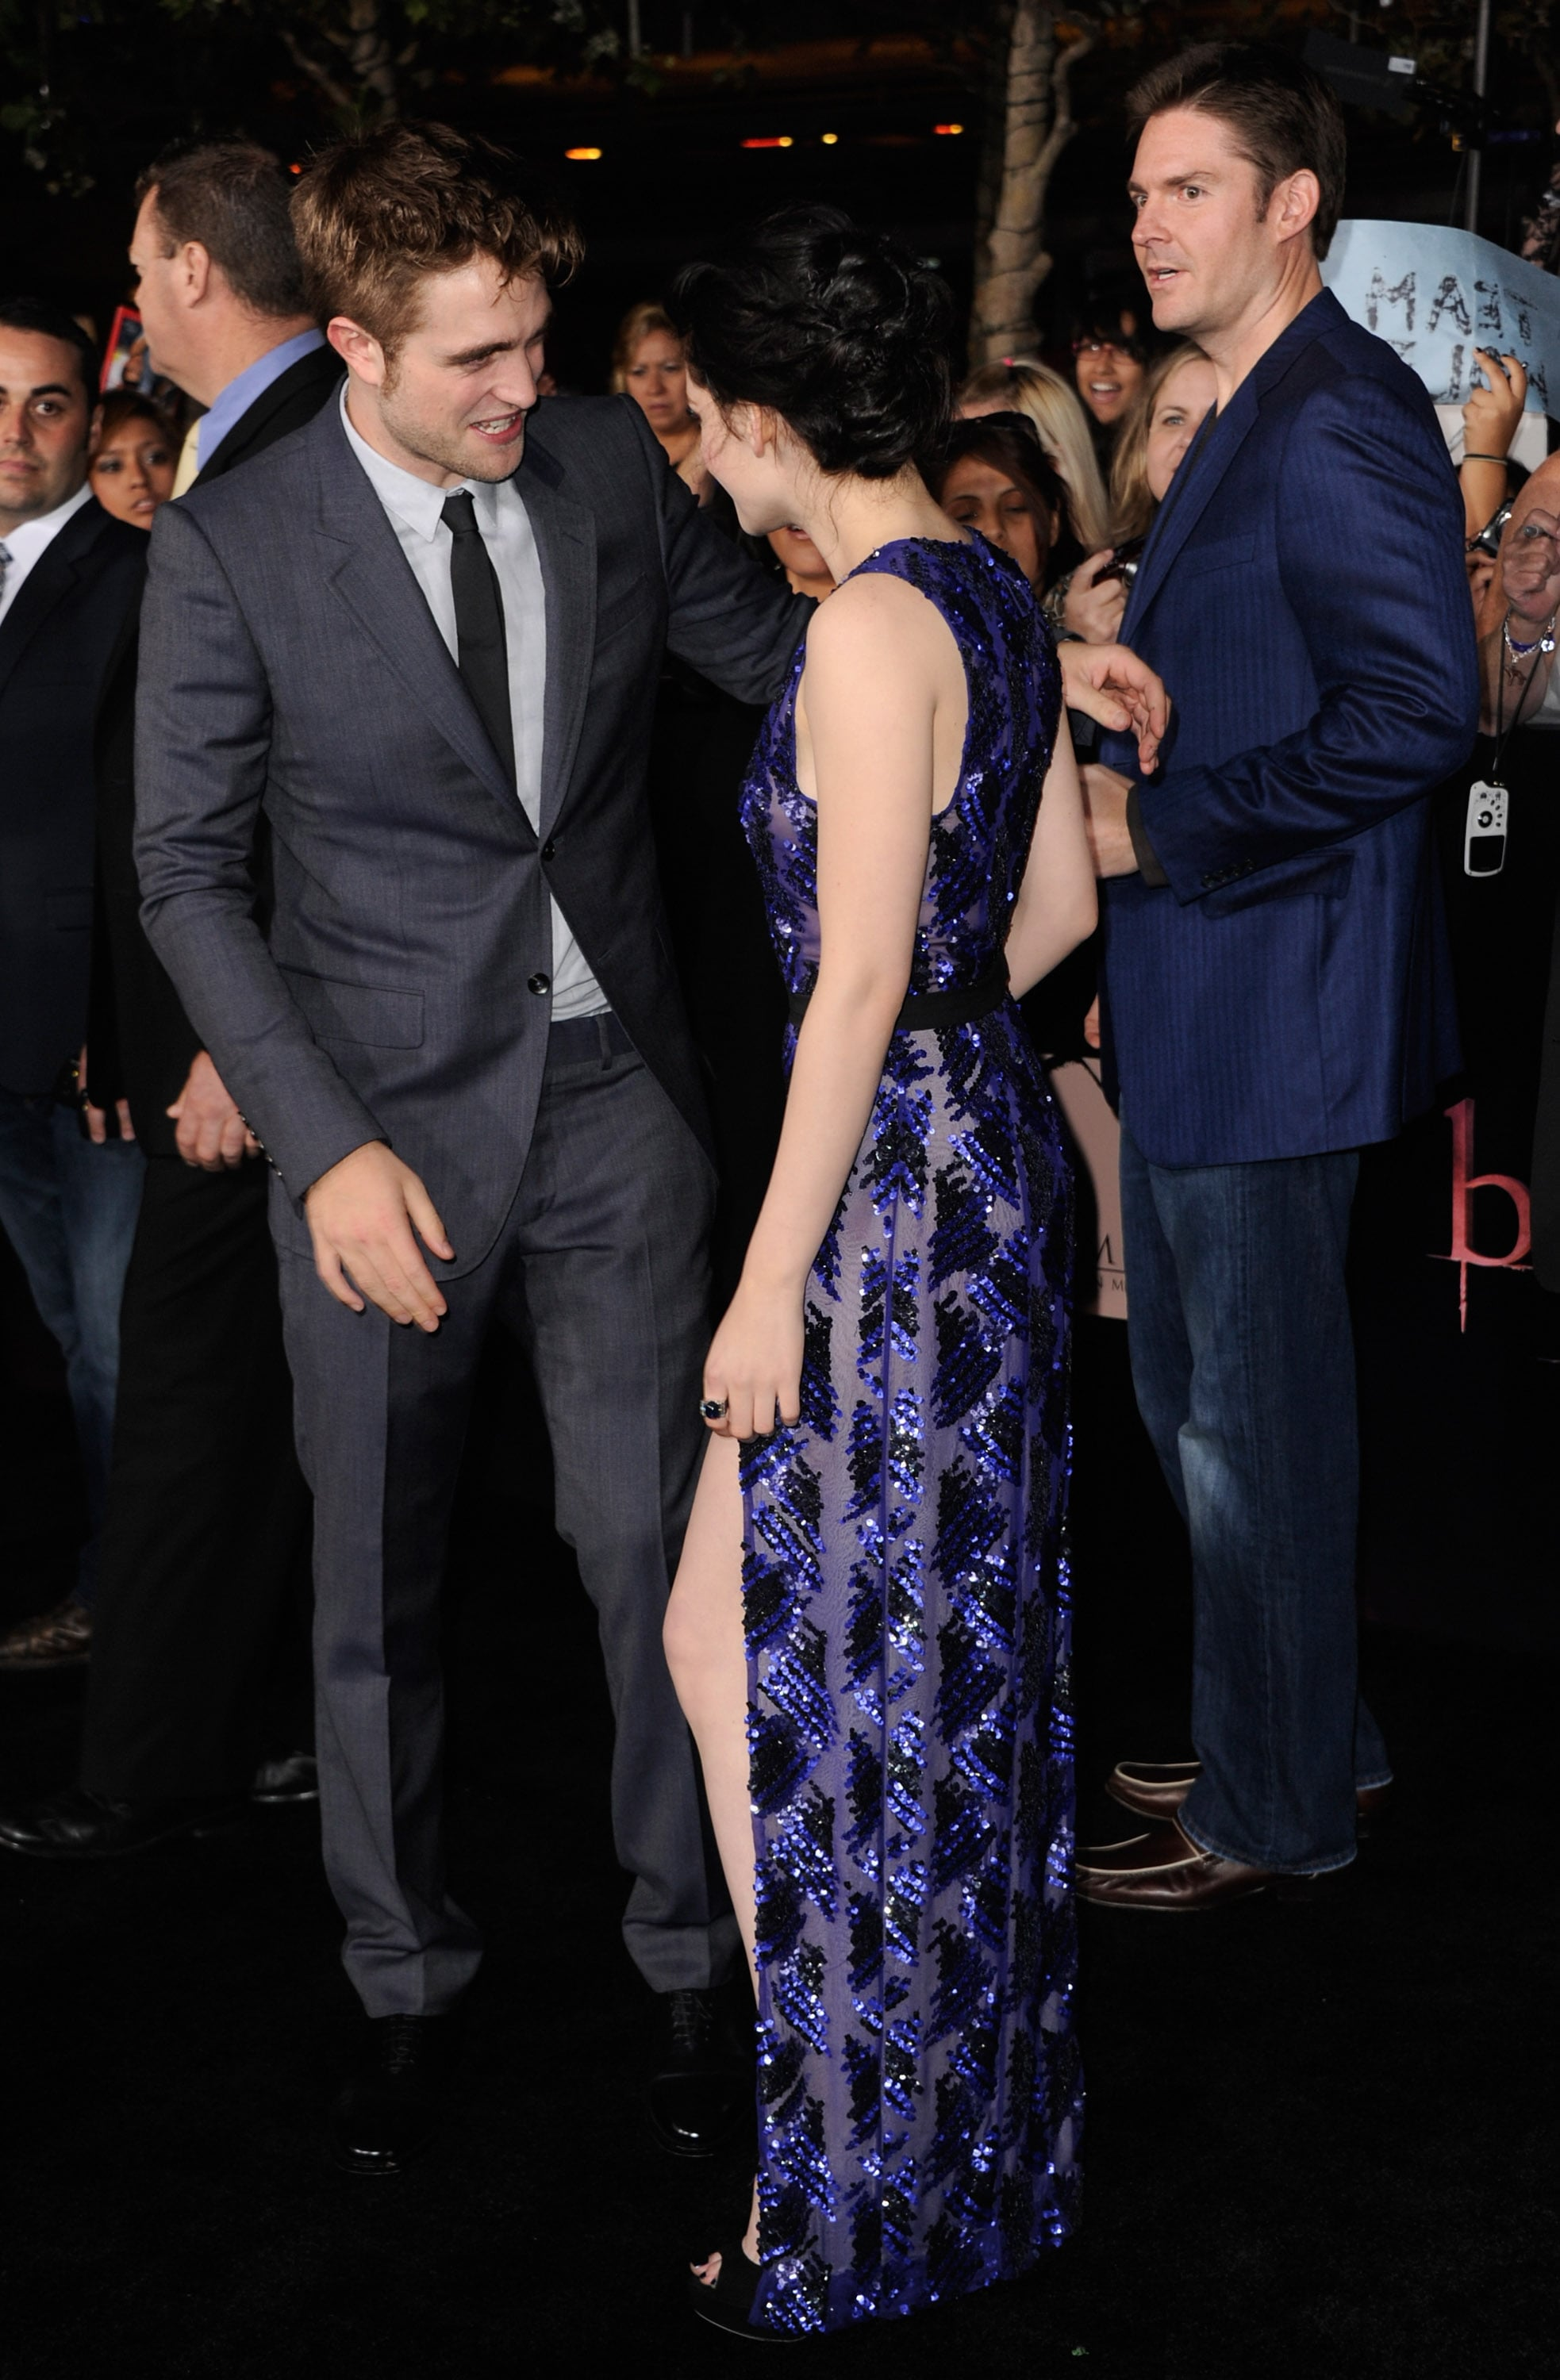 Robert Pattinson and Kristen Stewart shared a sweet laugh.